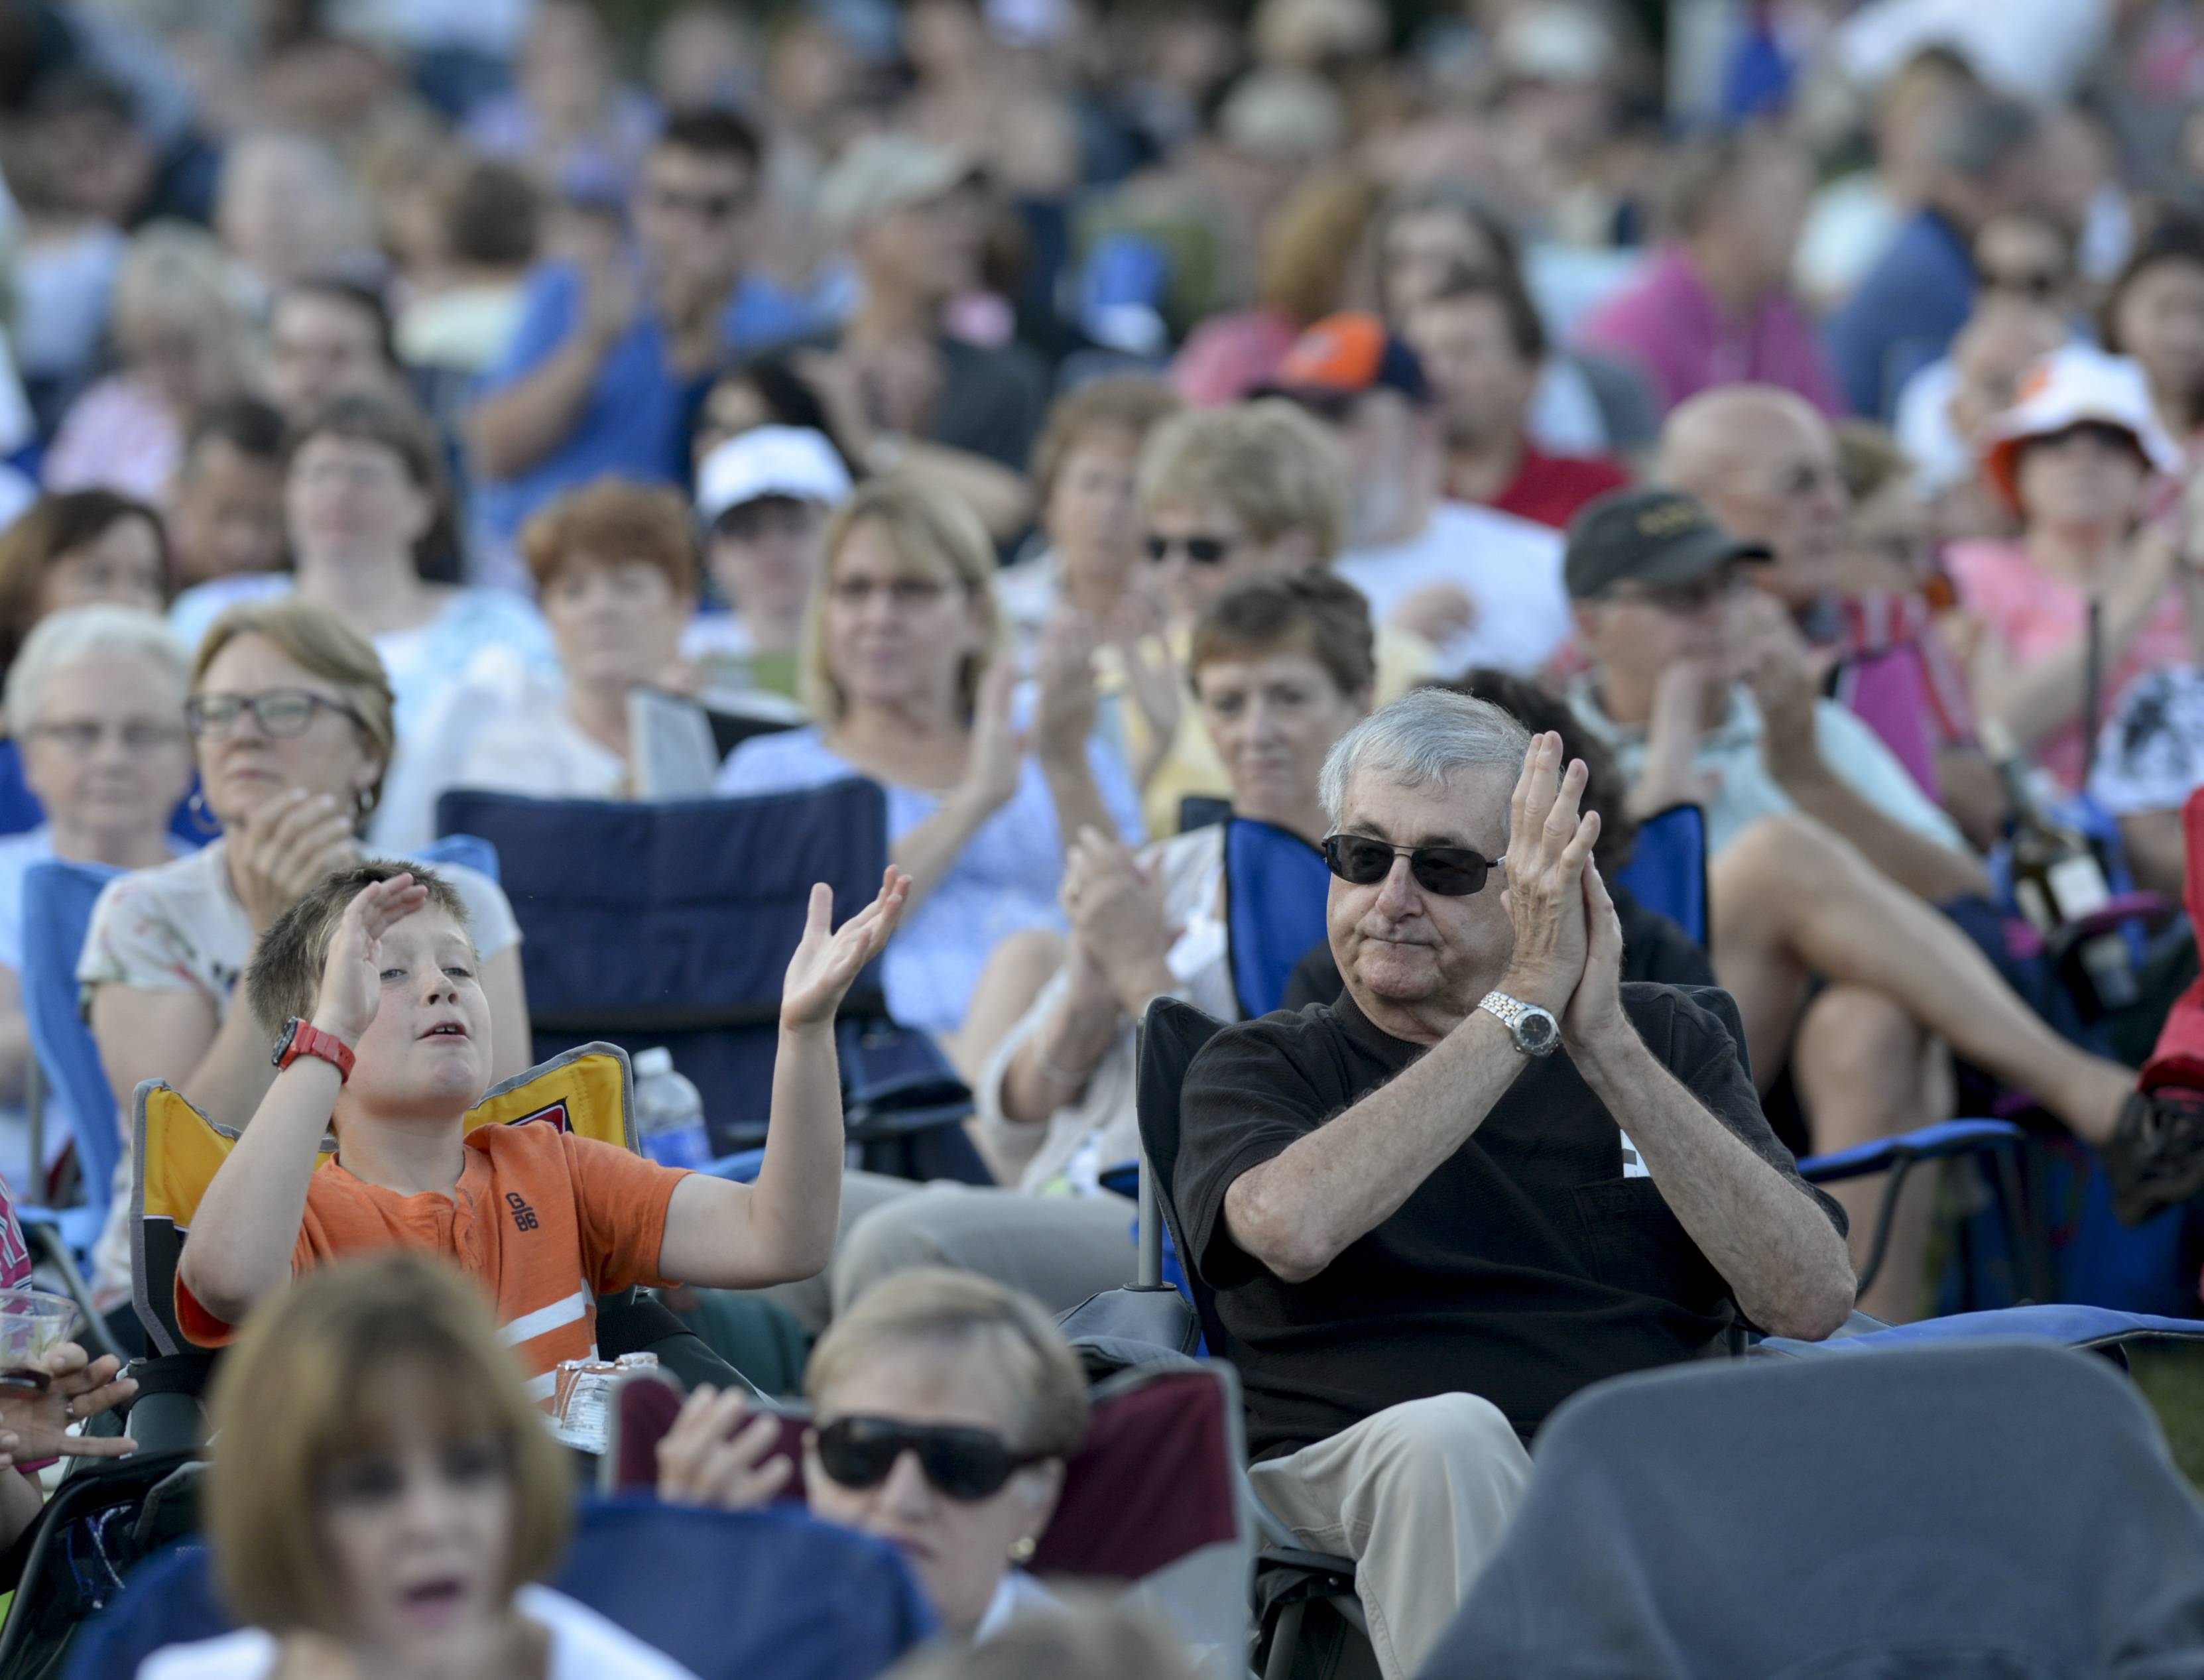 Mark Black/mblack@dailyherald.comLuke Wagner, 9 and his grandfather Leonard Spencer both of Naperville applaud during the Chicago Symphony Orchestra's performance Thursday night at The Morton Arboretum in Lisle.